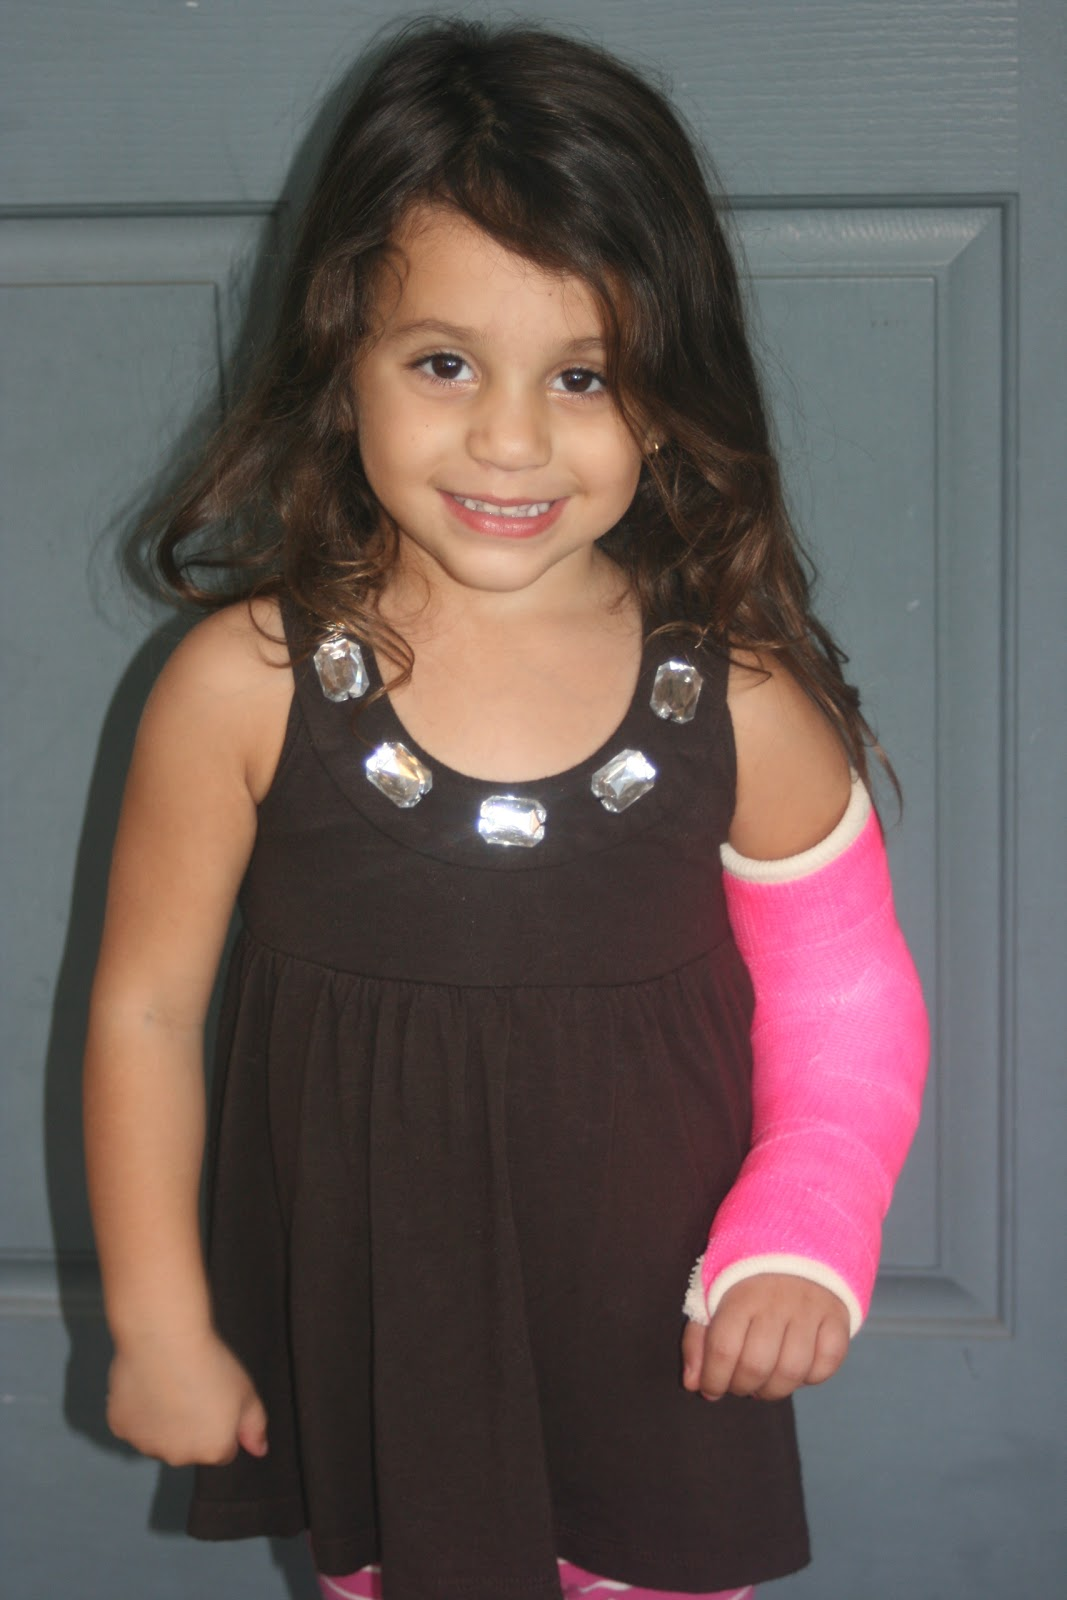 big girl, pink cast-2.bp.blogspot.com